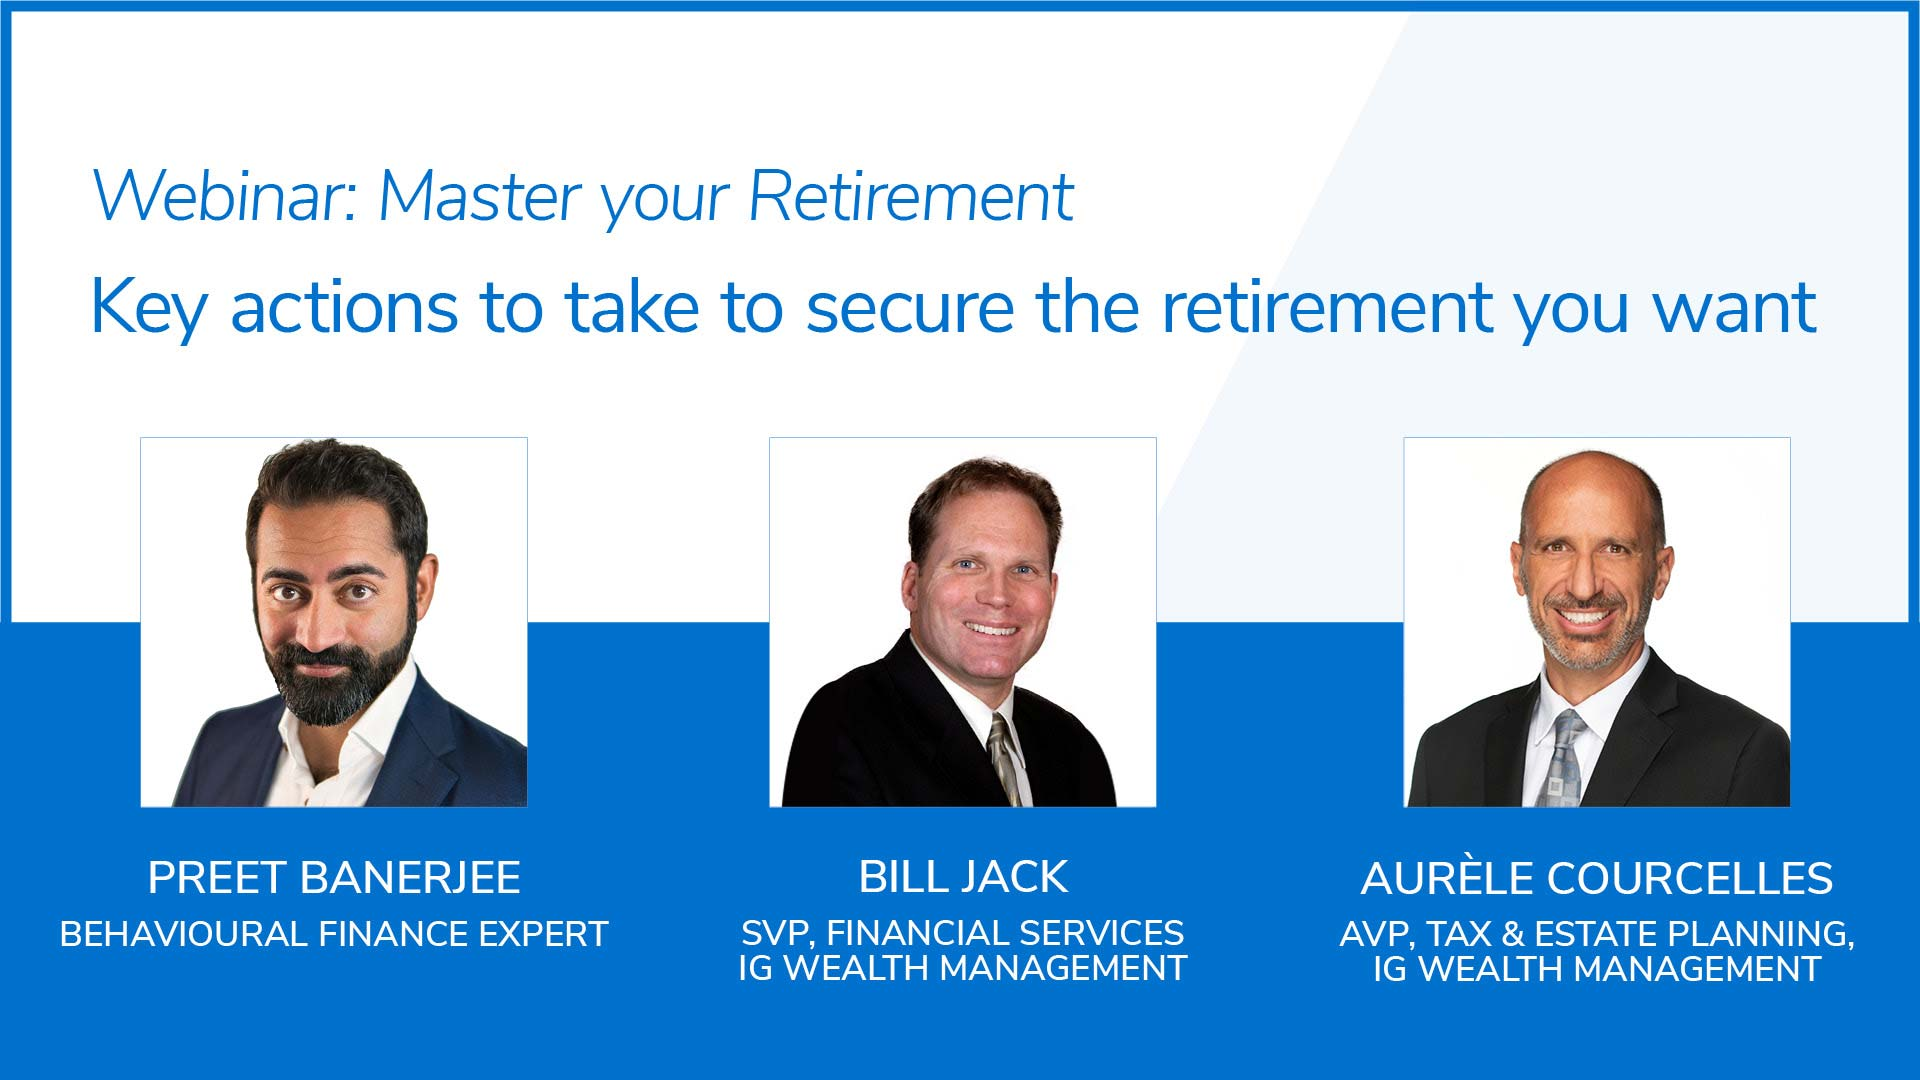 Webinar: Master your retirement - Key actions to take to secure the retirement you want - Wednesday, January 27 at 7:30pm et